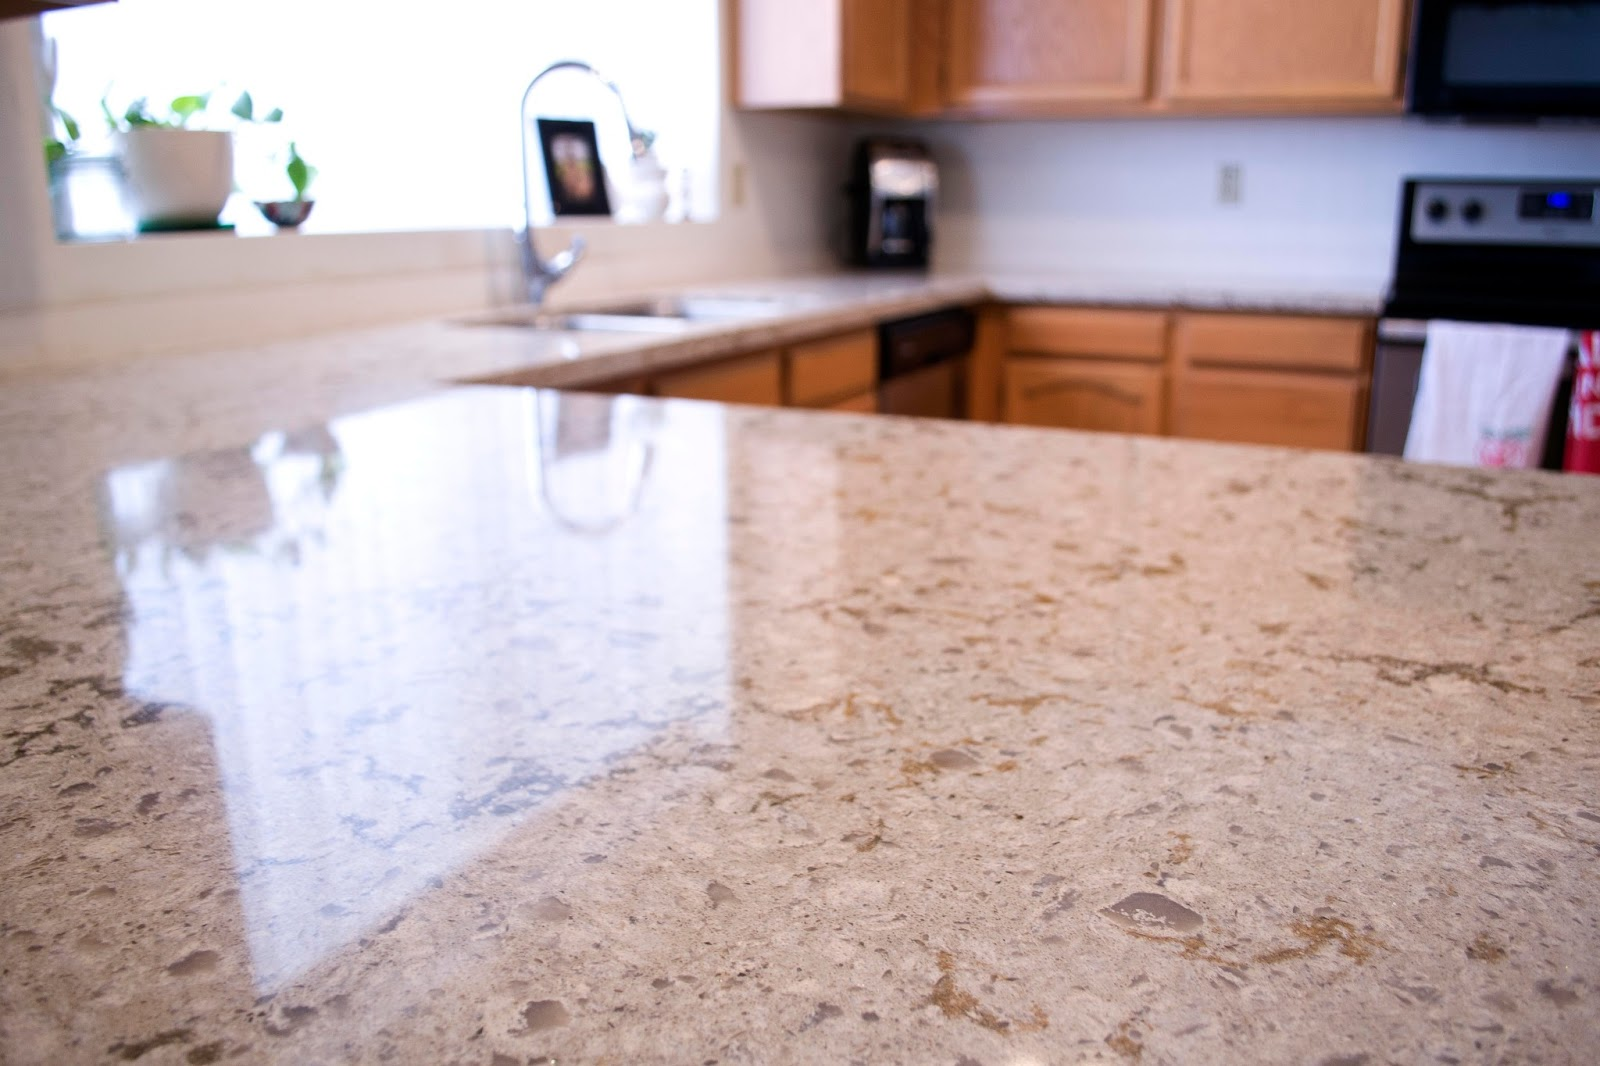 Heidi schatze kitchen upgrade cambria quartz for Who makes quartz countertops